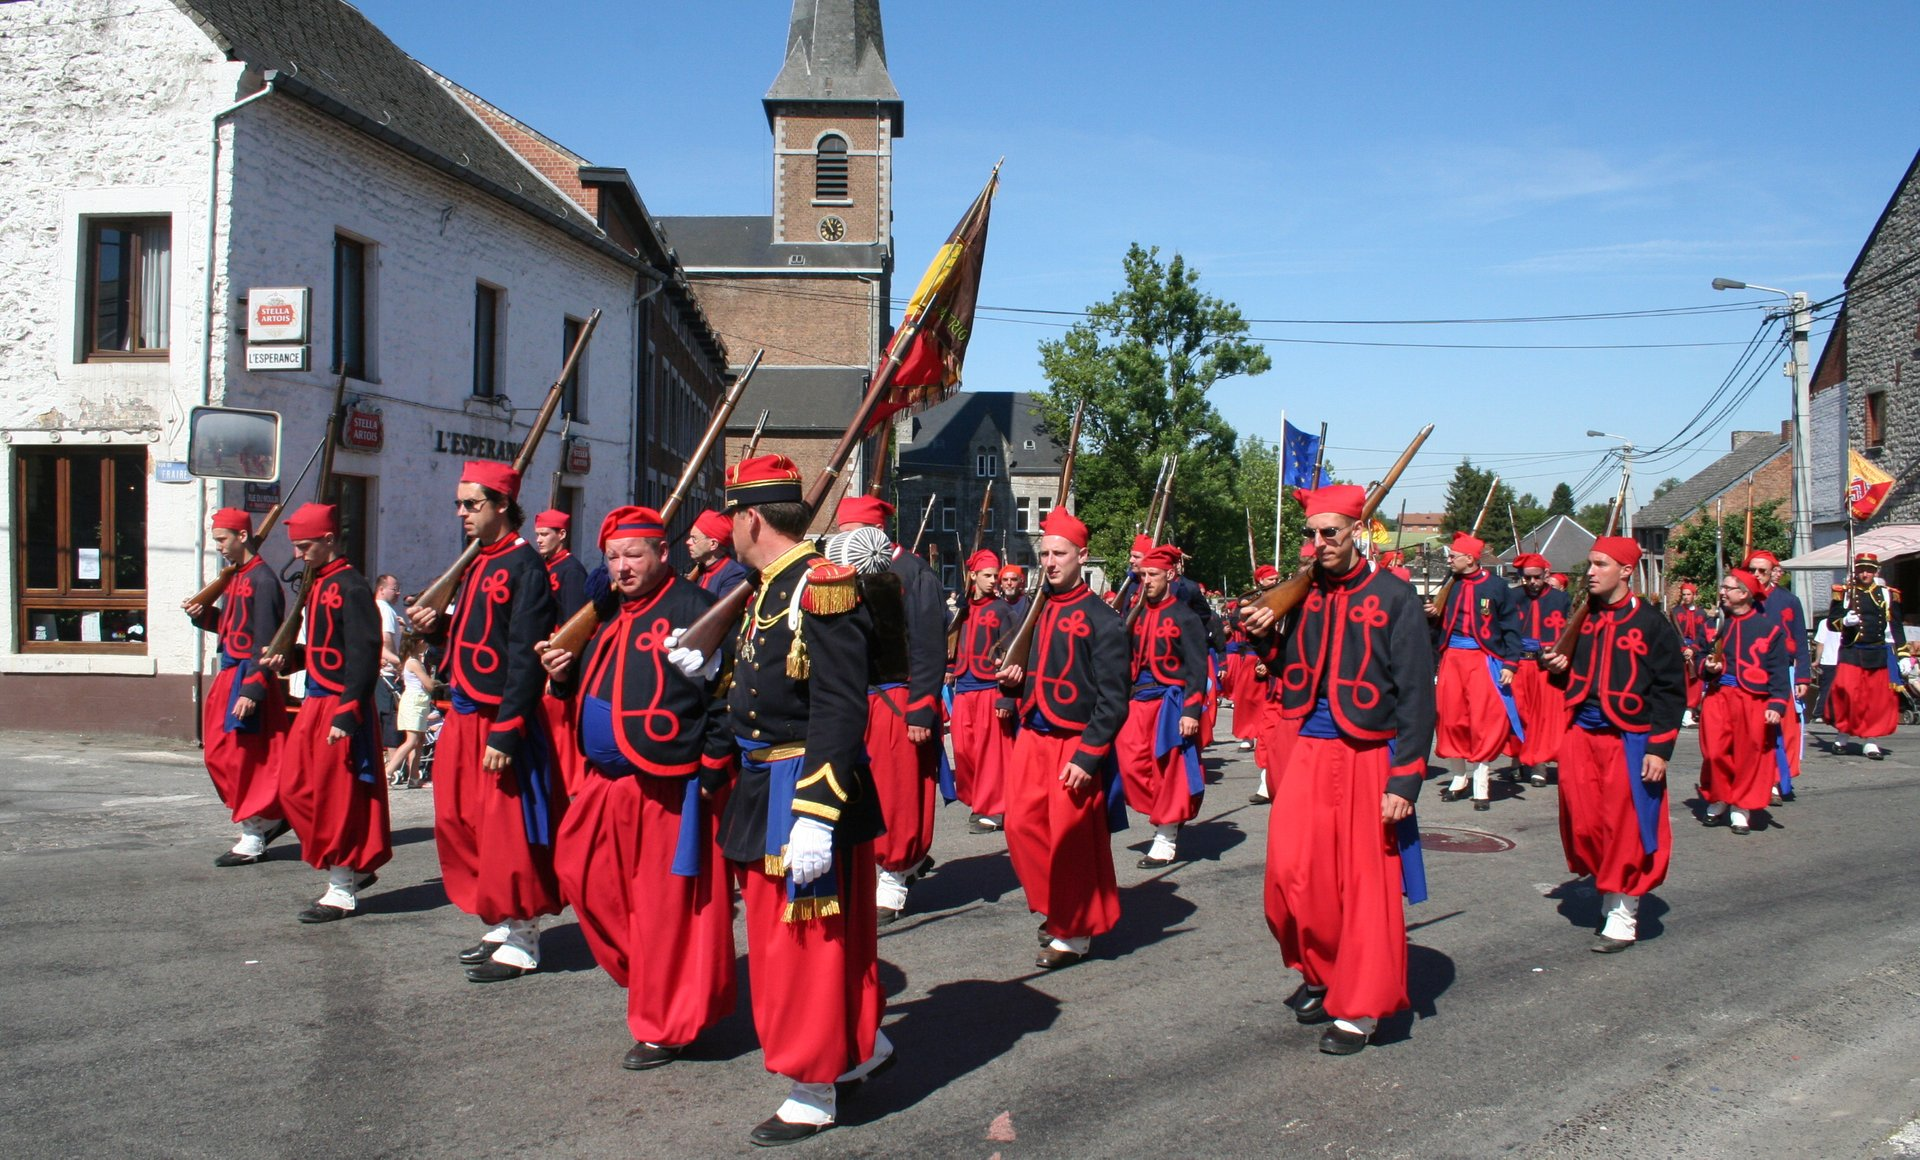 Best time to see Marches of Entre-Sambre-et-Meuse in Belgium 2020